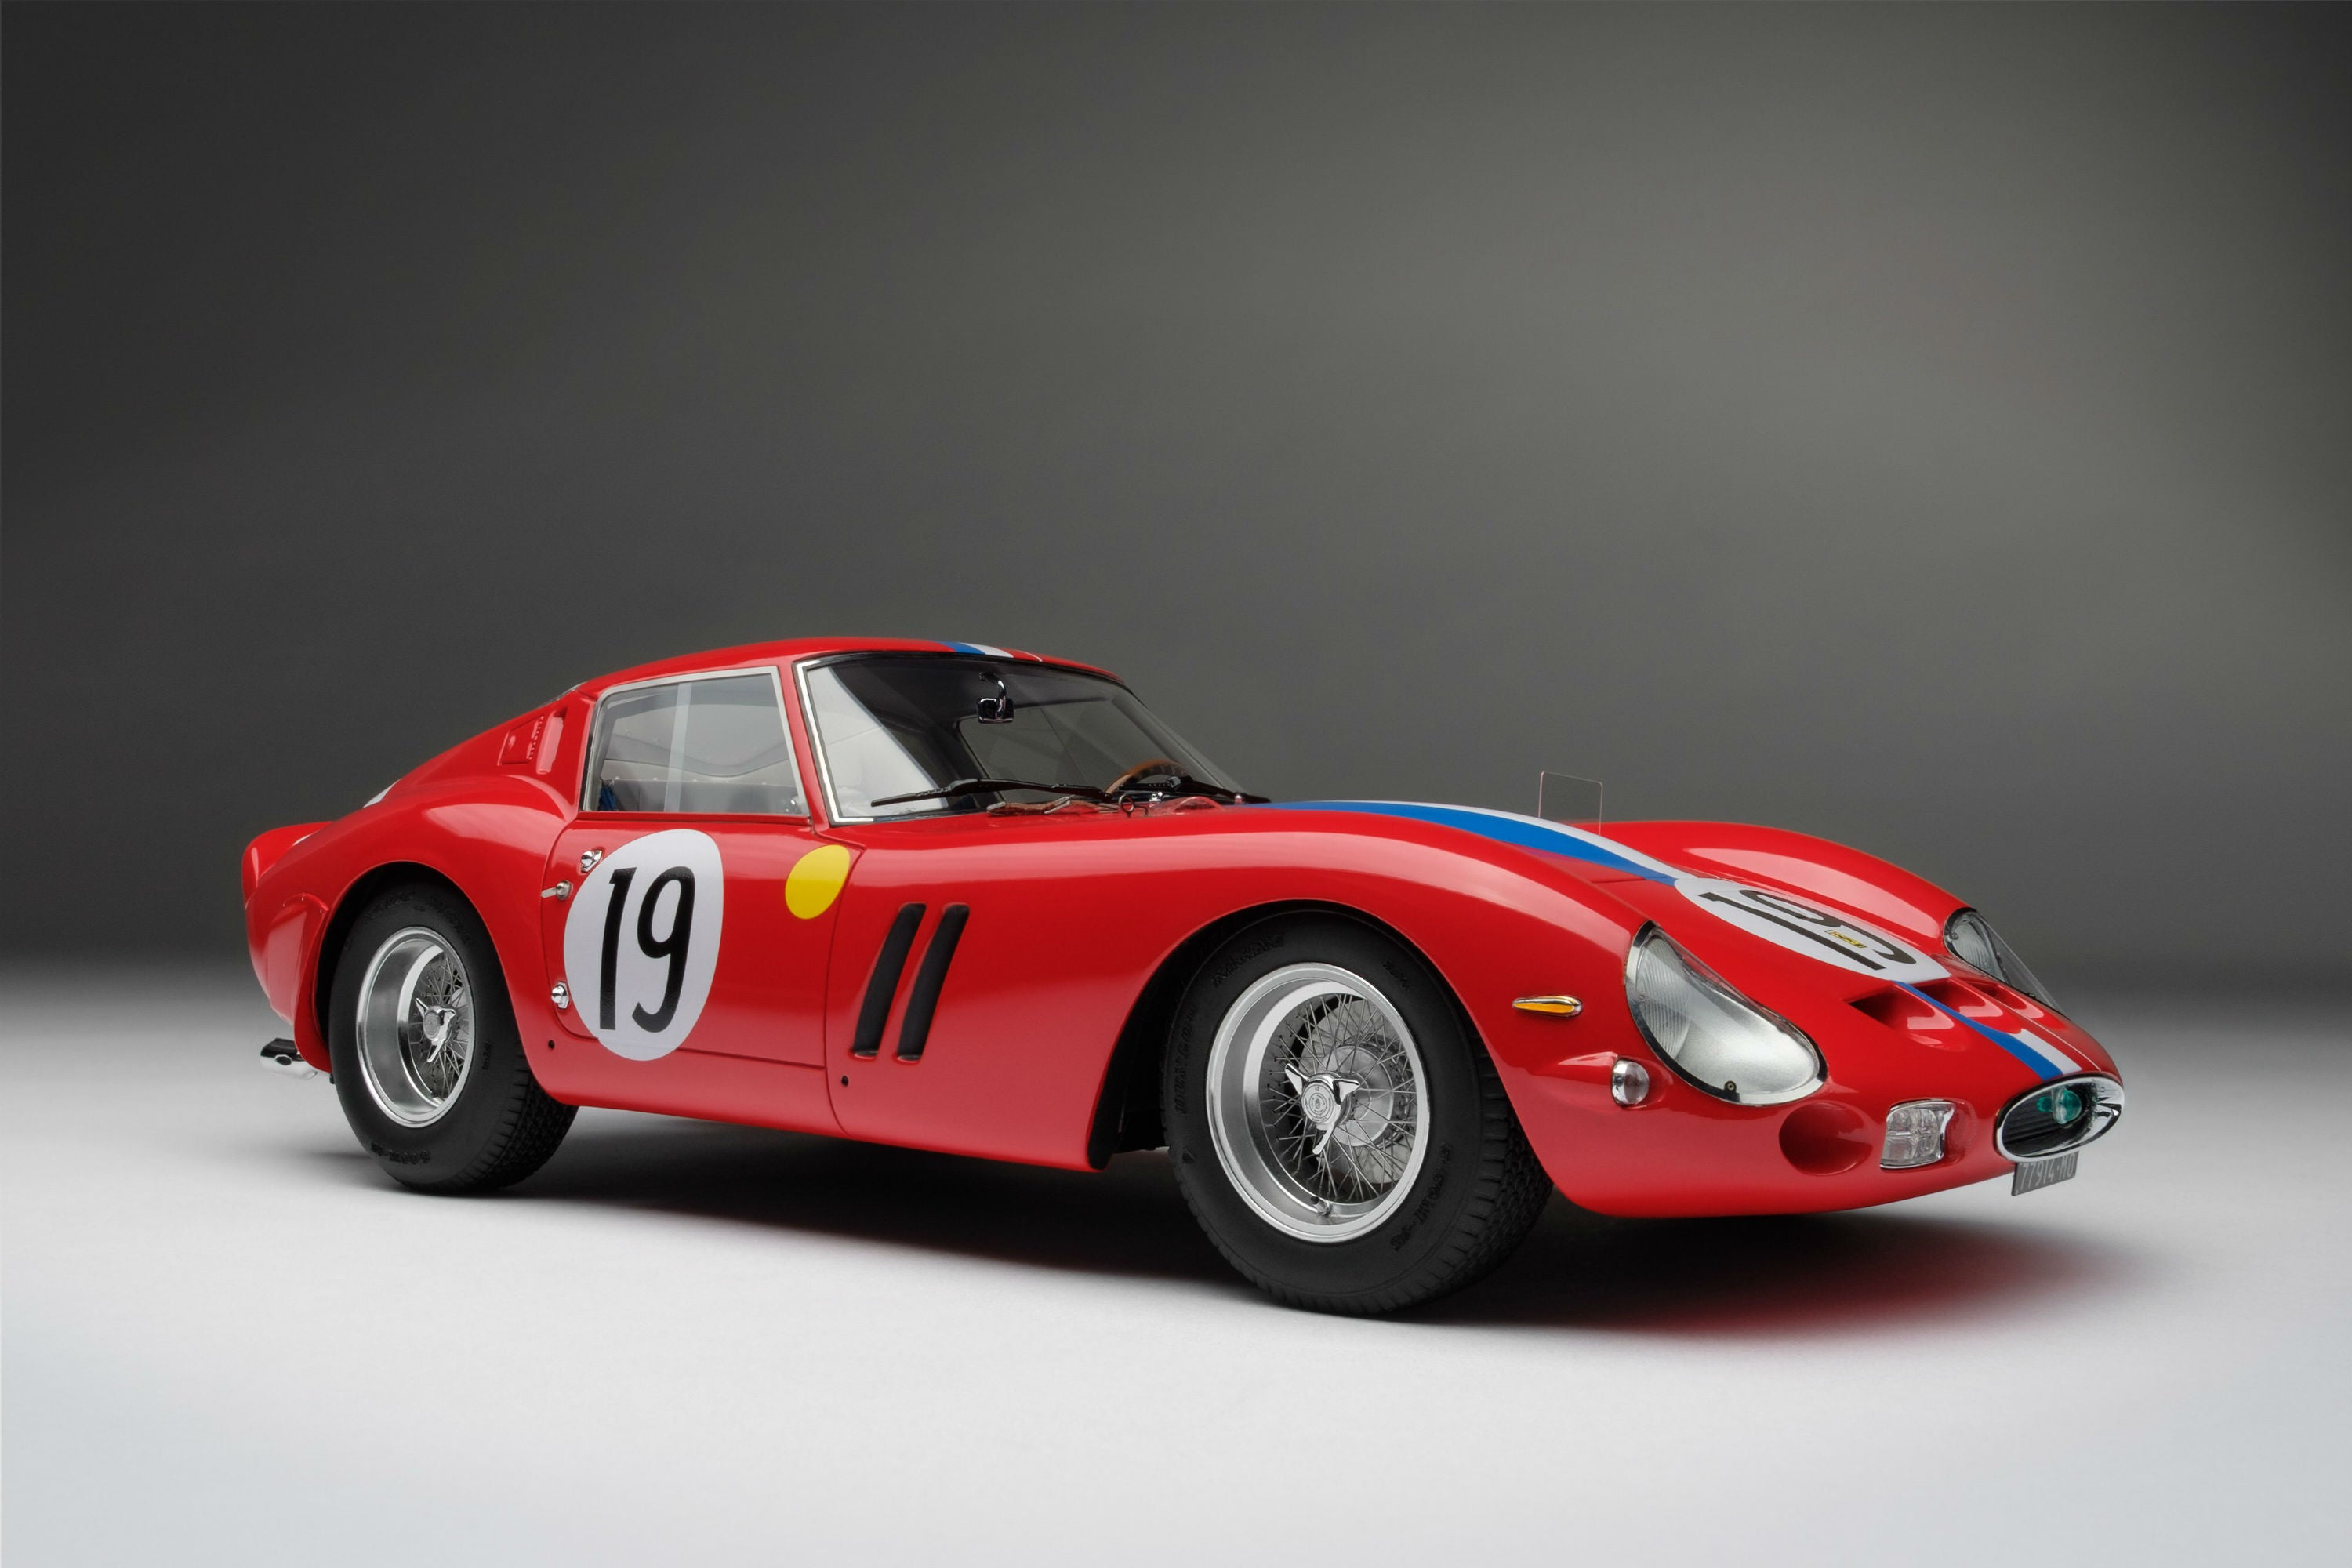 Ferrari 250 GTO (1962 Le Mans Class Winner) | 1:18 Scale Model Car by Amalgam Collection | Front Quarter